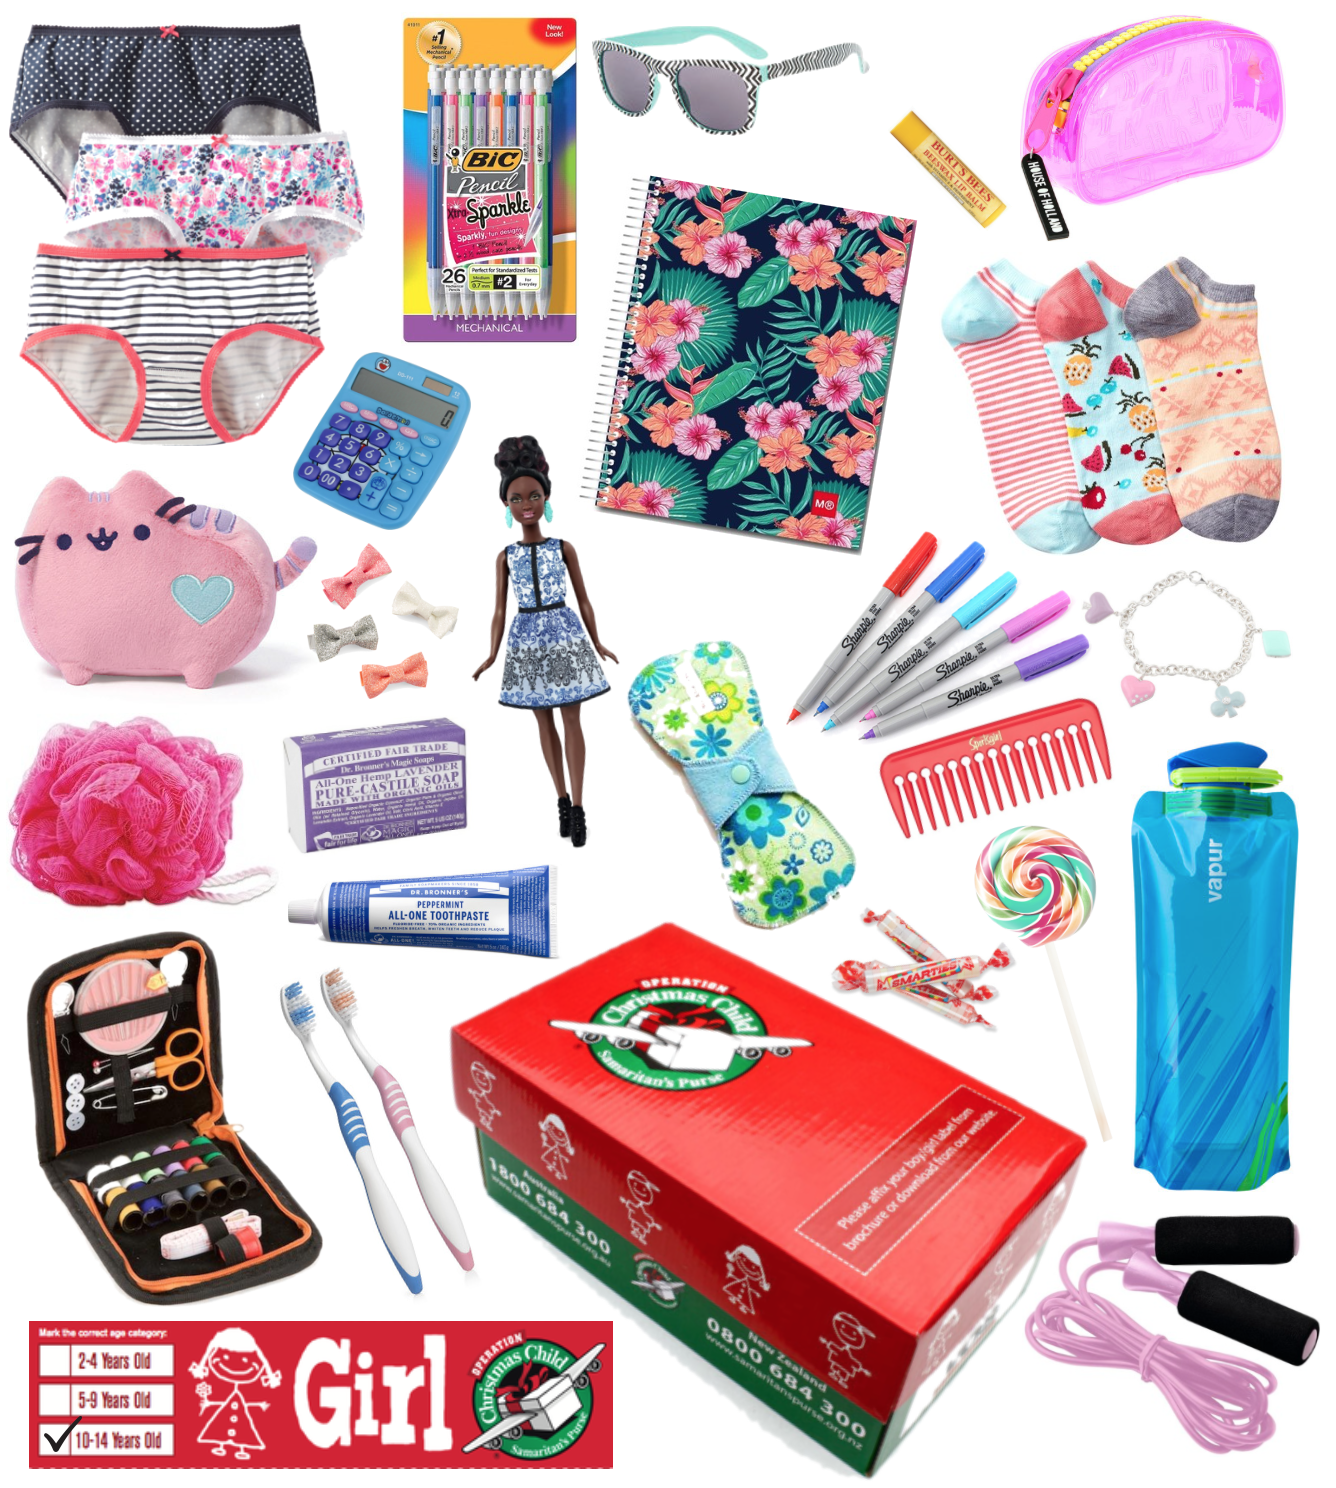 Christmas Shoe Box Appeal Ideas.Example Of A 10 14 Girl Shoebox Packed With Fun Thoughtful